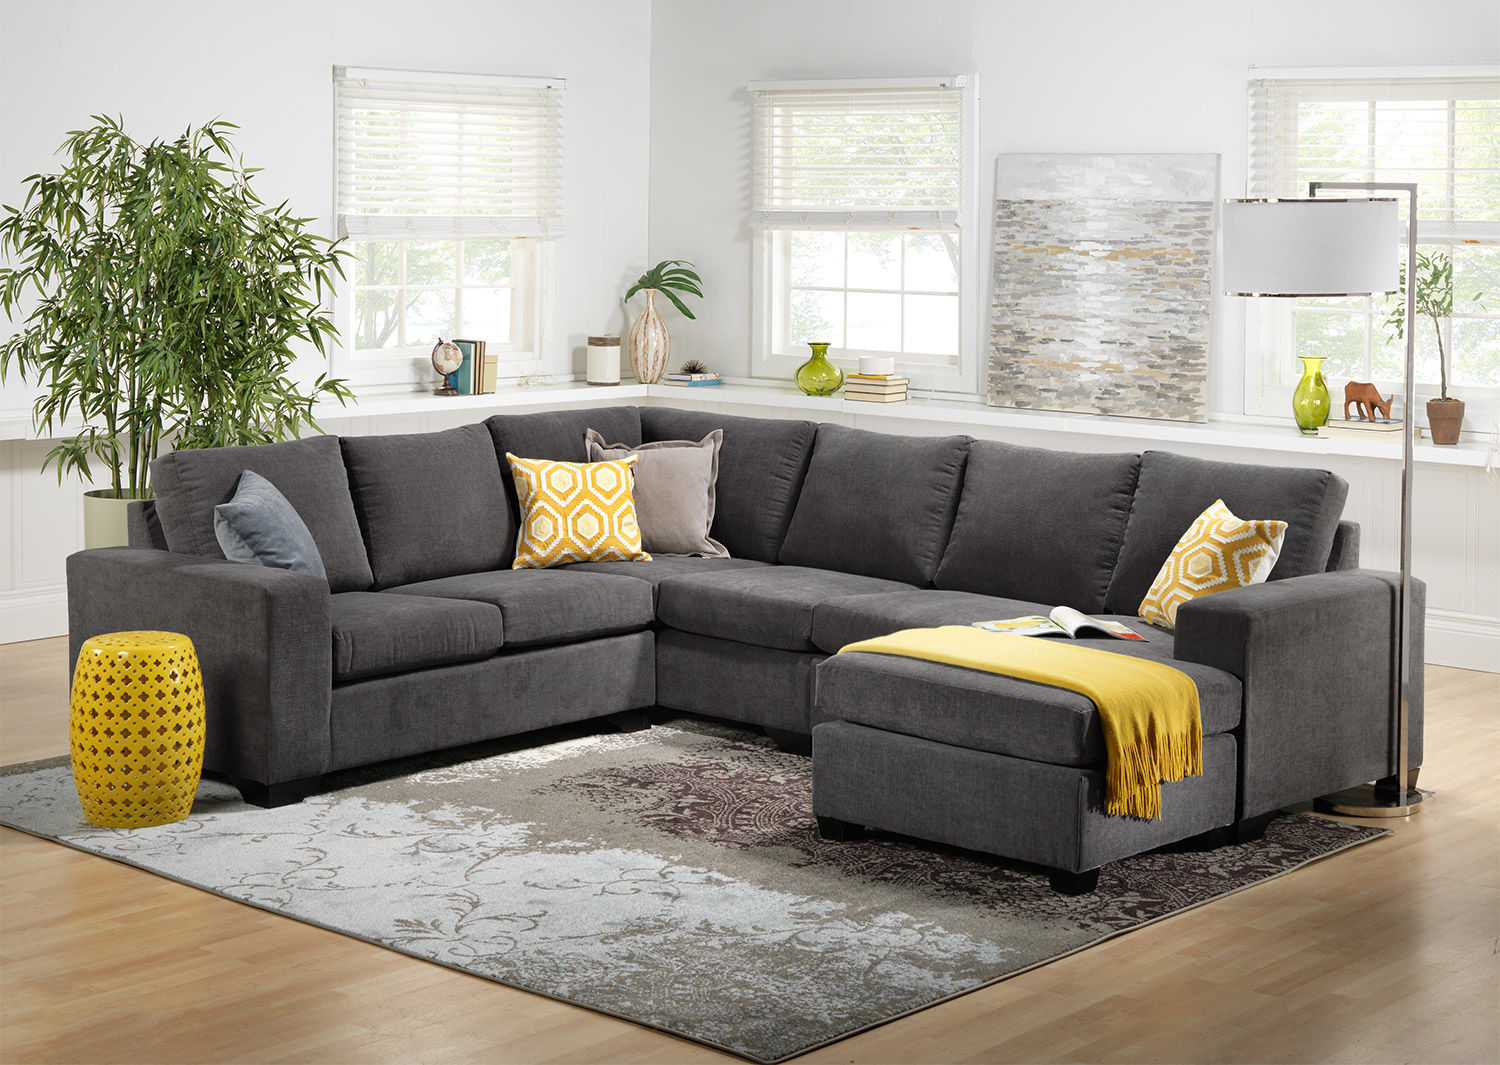 fancy sofa mart sectional collection-Awesome sofa Mart Sectional Photo